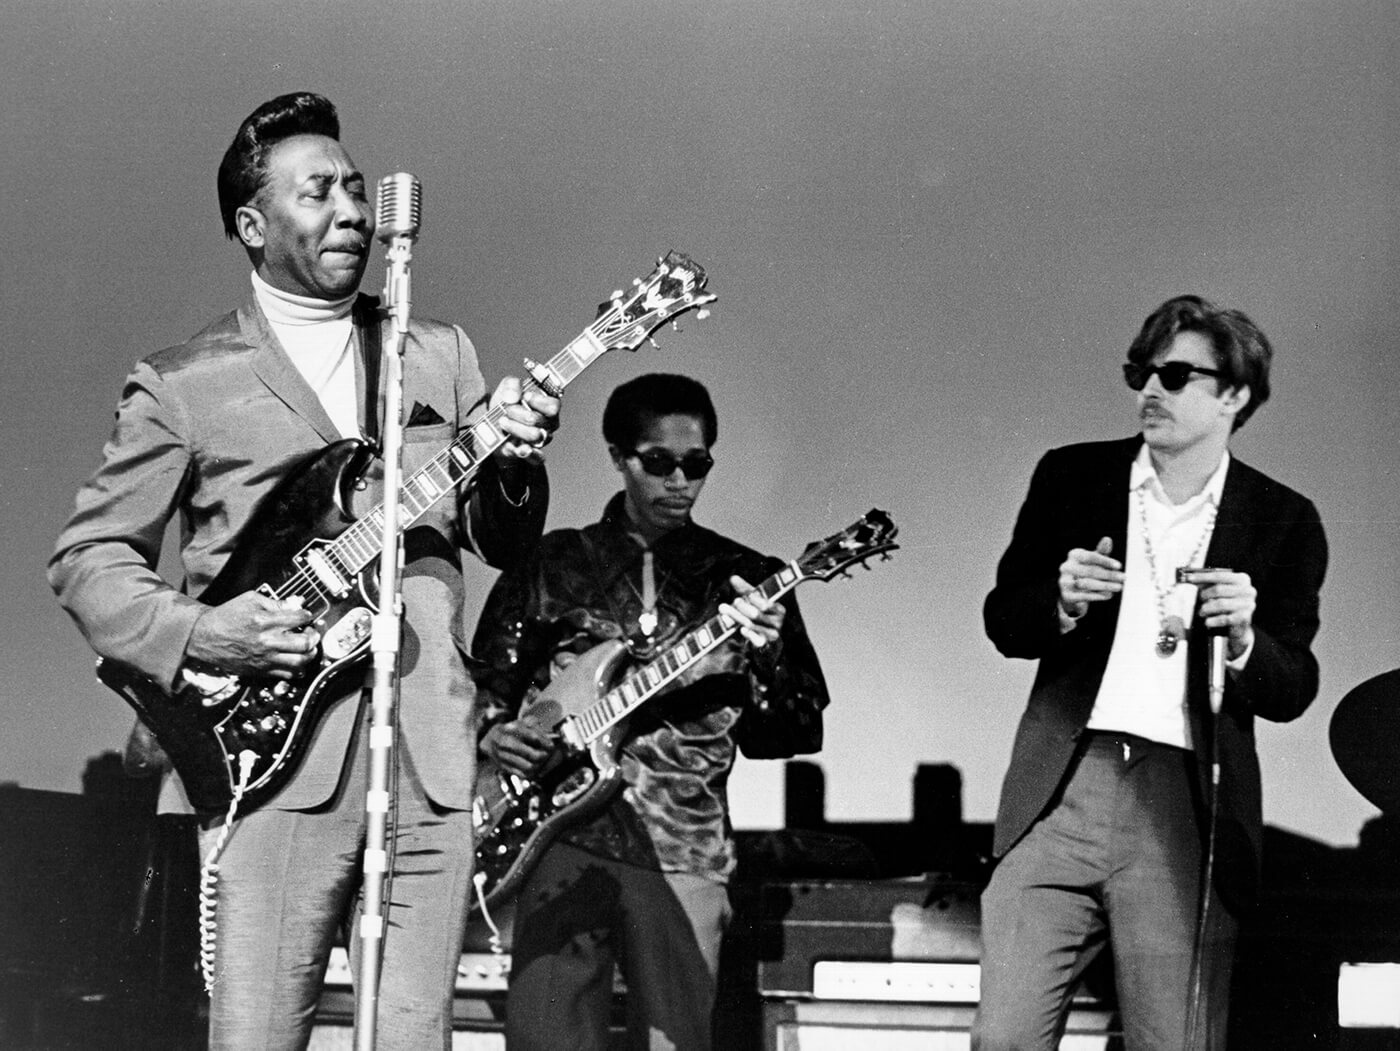 Muddy Waters creatively extended the 12-bar-blues formula. His version of Willie Dixon's 'I'm Your Hoochie Coochie Man' is an example of a 16-bar blues. Credit: Getty Images